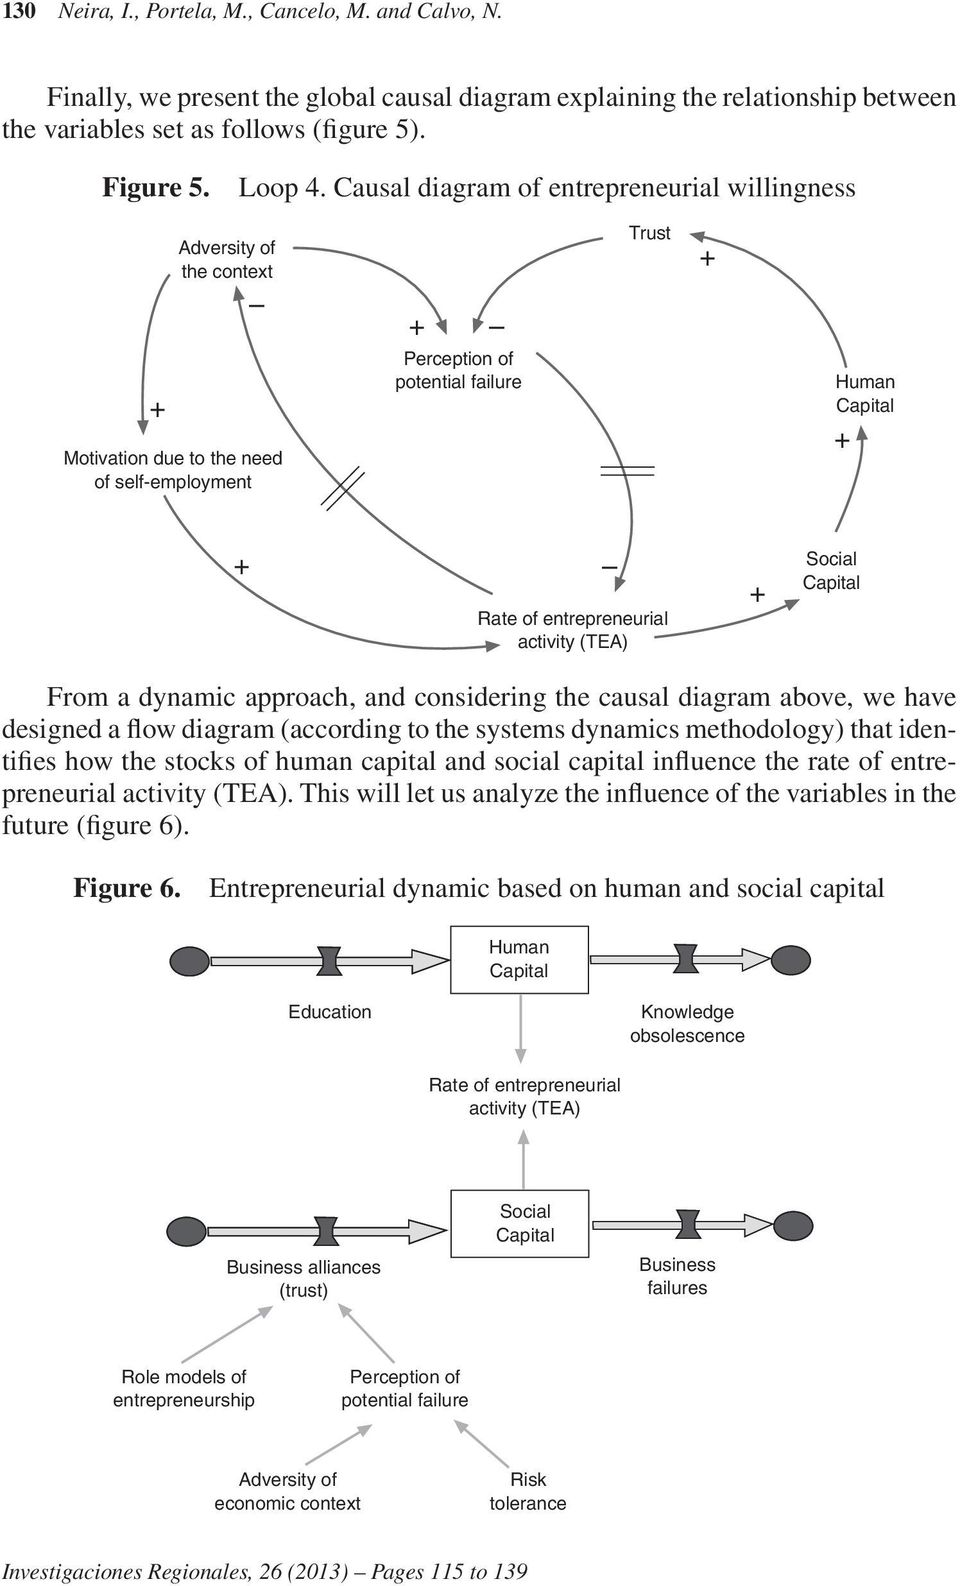 entrepreneurial activity (TEA) + Social Capital From a dynamic approach, and considering the causal diagram above, we have designed a flow diagram (according to the systems dynamics methodology) that